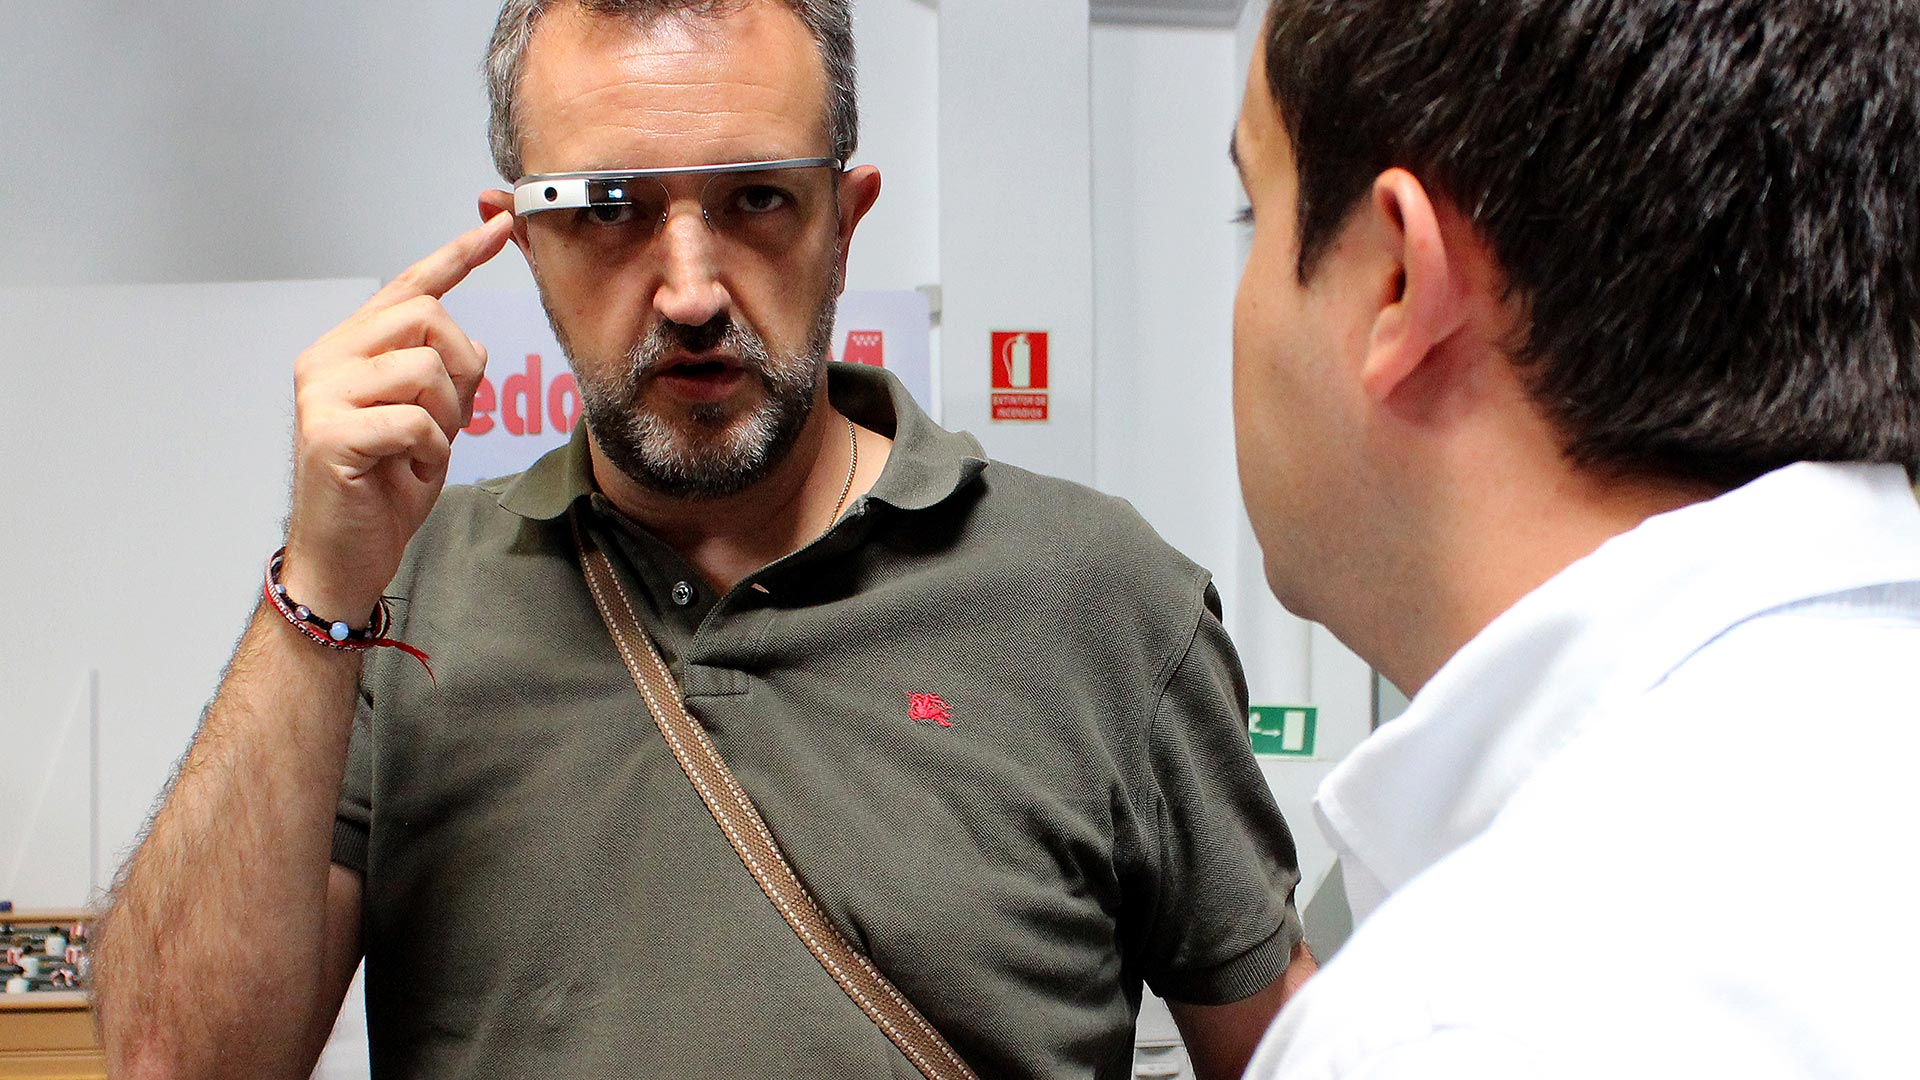 tpnet-eventos-encuentros-profesionales-iot-google-glasses-tester